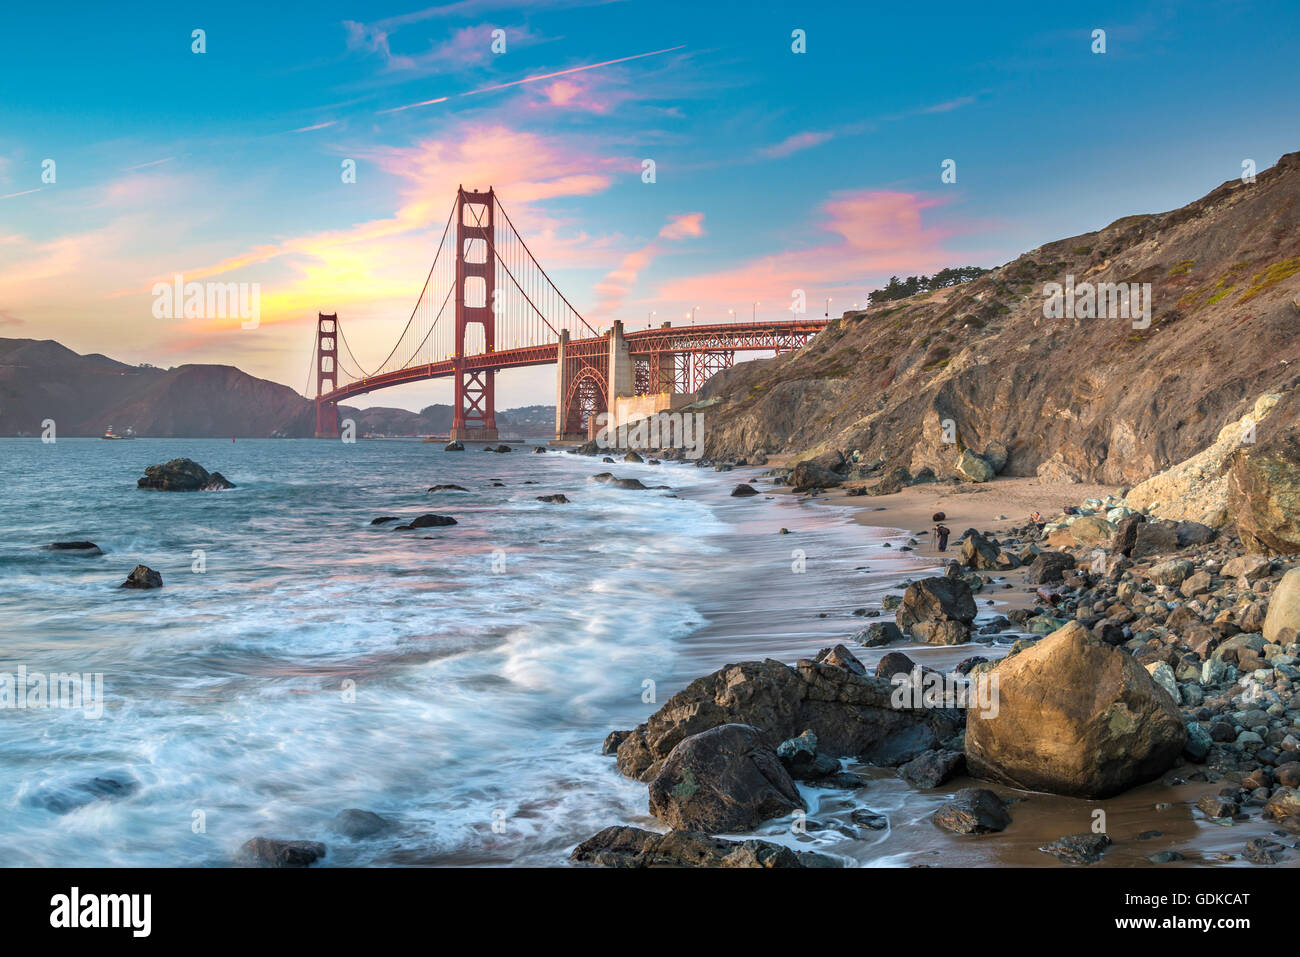 Le Golden Gate Bridge, lumière du soir, Marshall's Beach, côte rocheuse, San Francisco, États Photo Stock